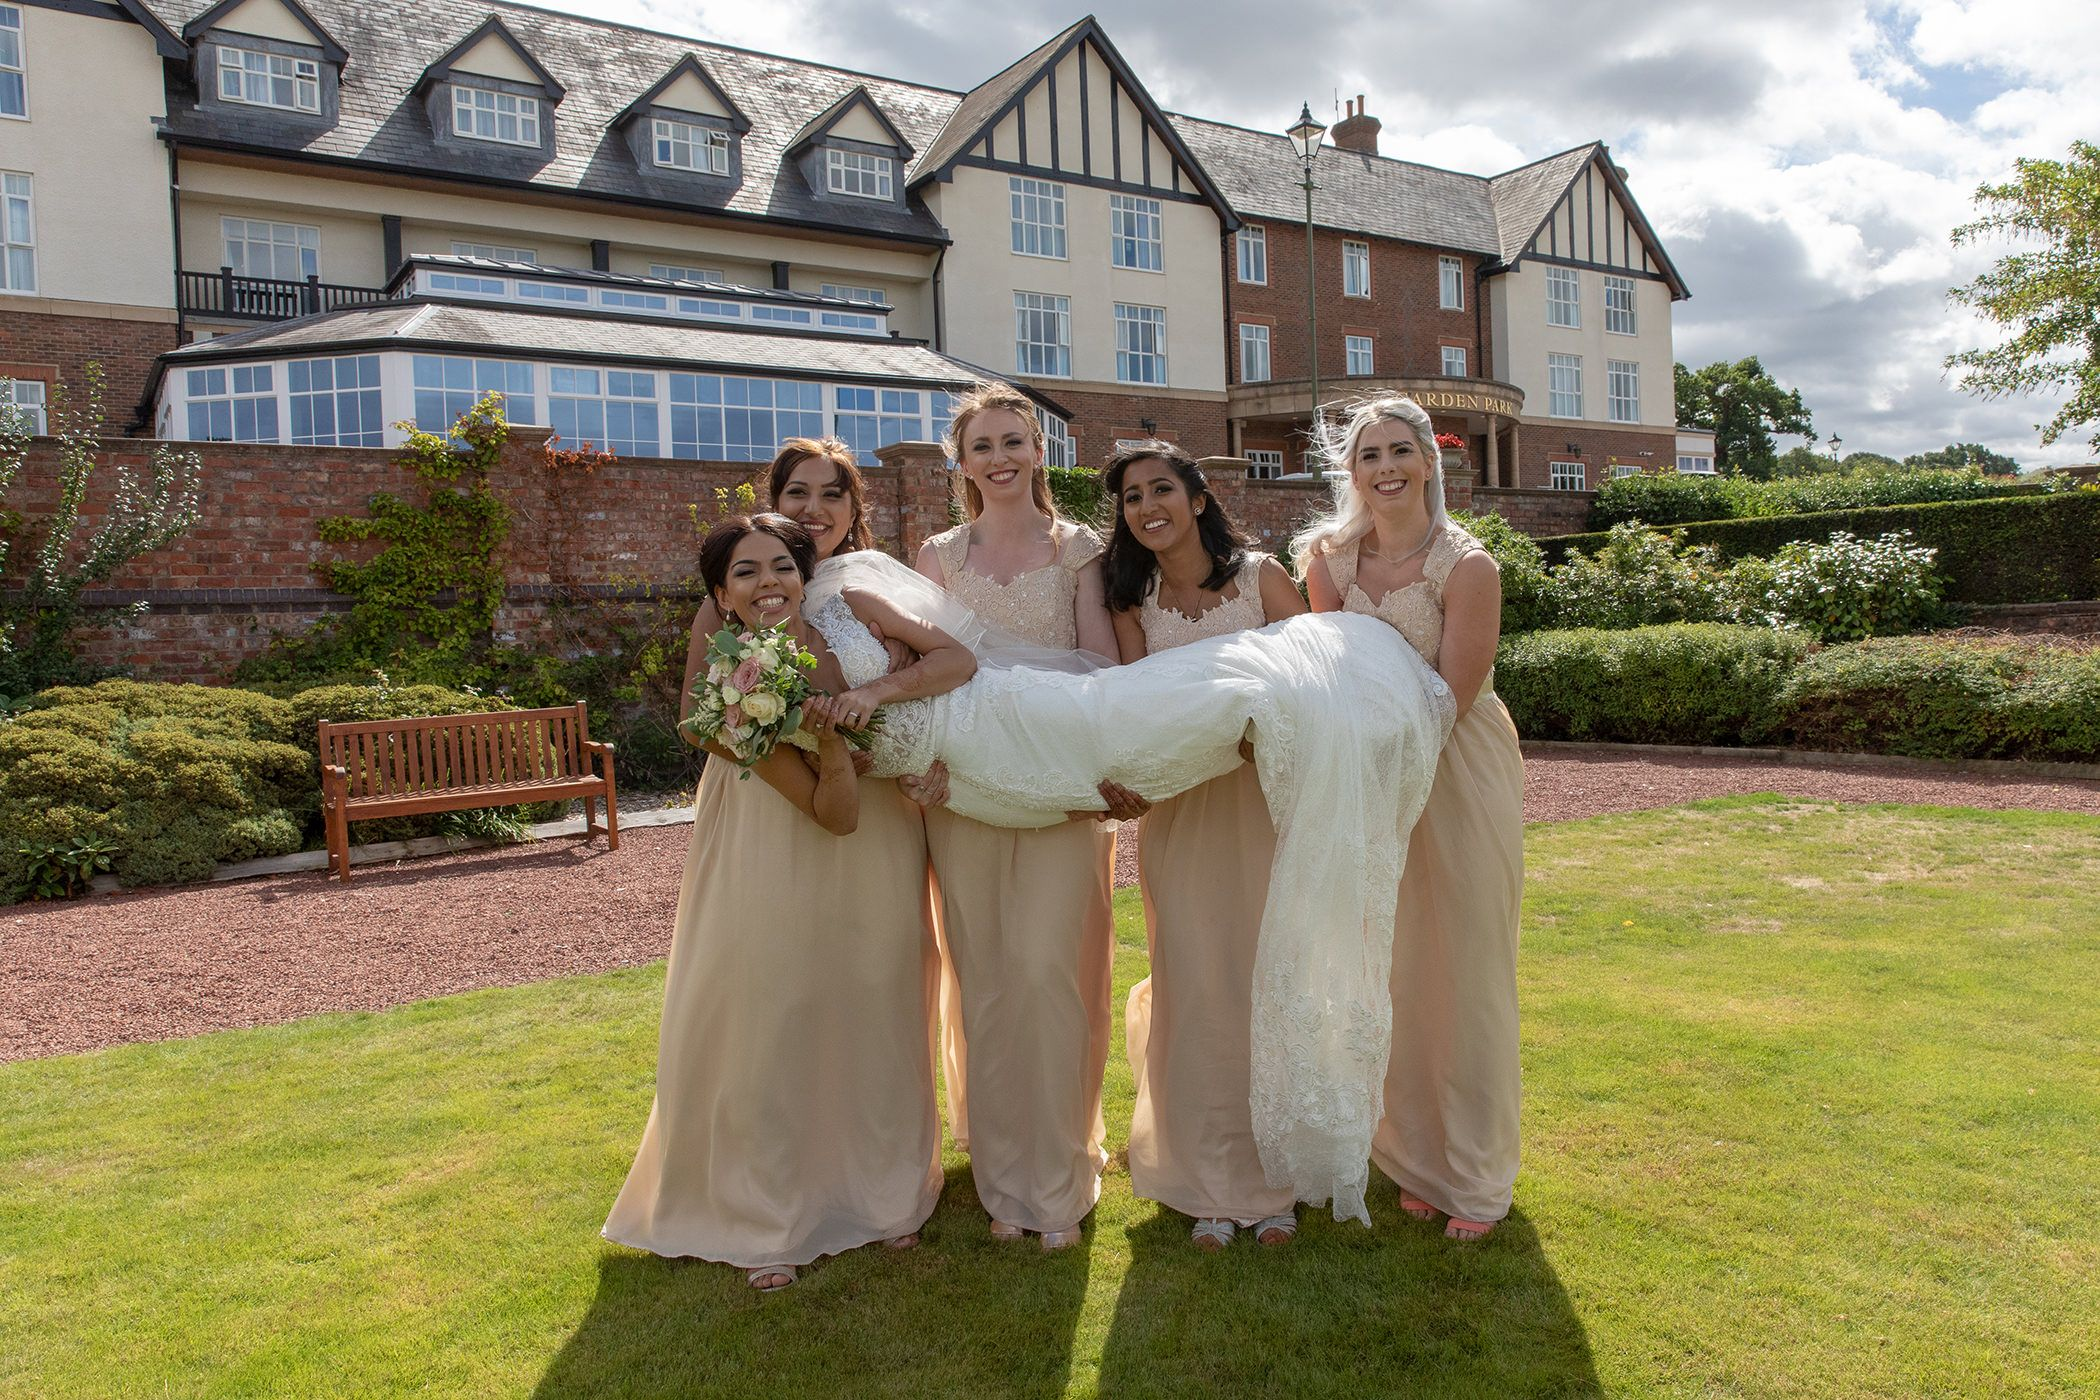 bride and bridesmaids carrying her